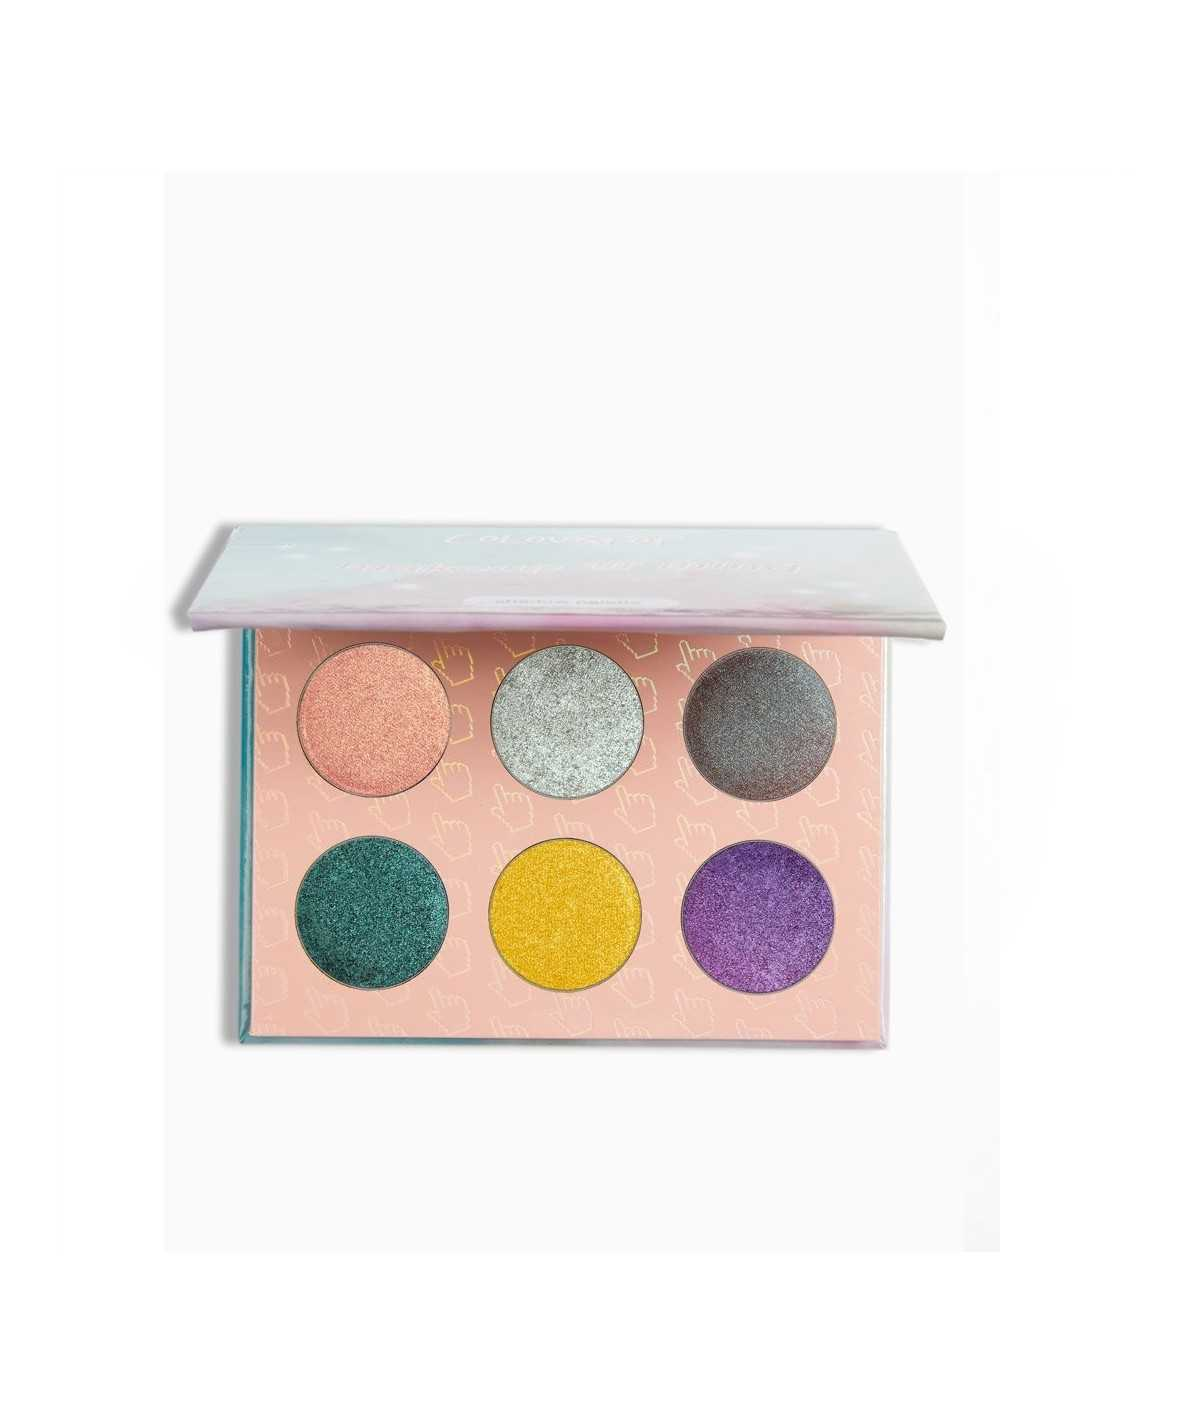 Colourpop eyeshadow palette Makeup Ur Mind